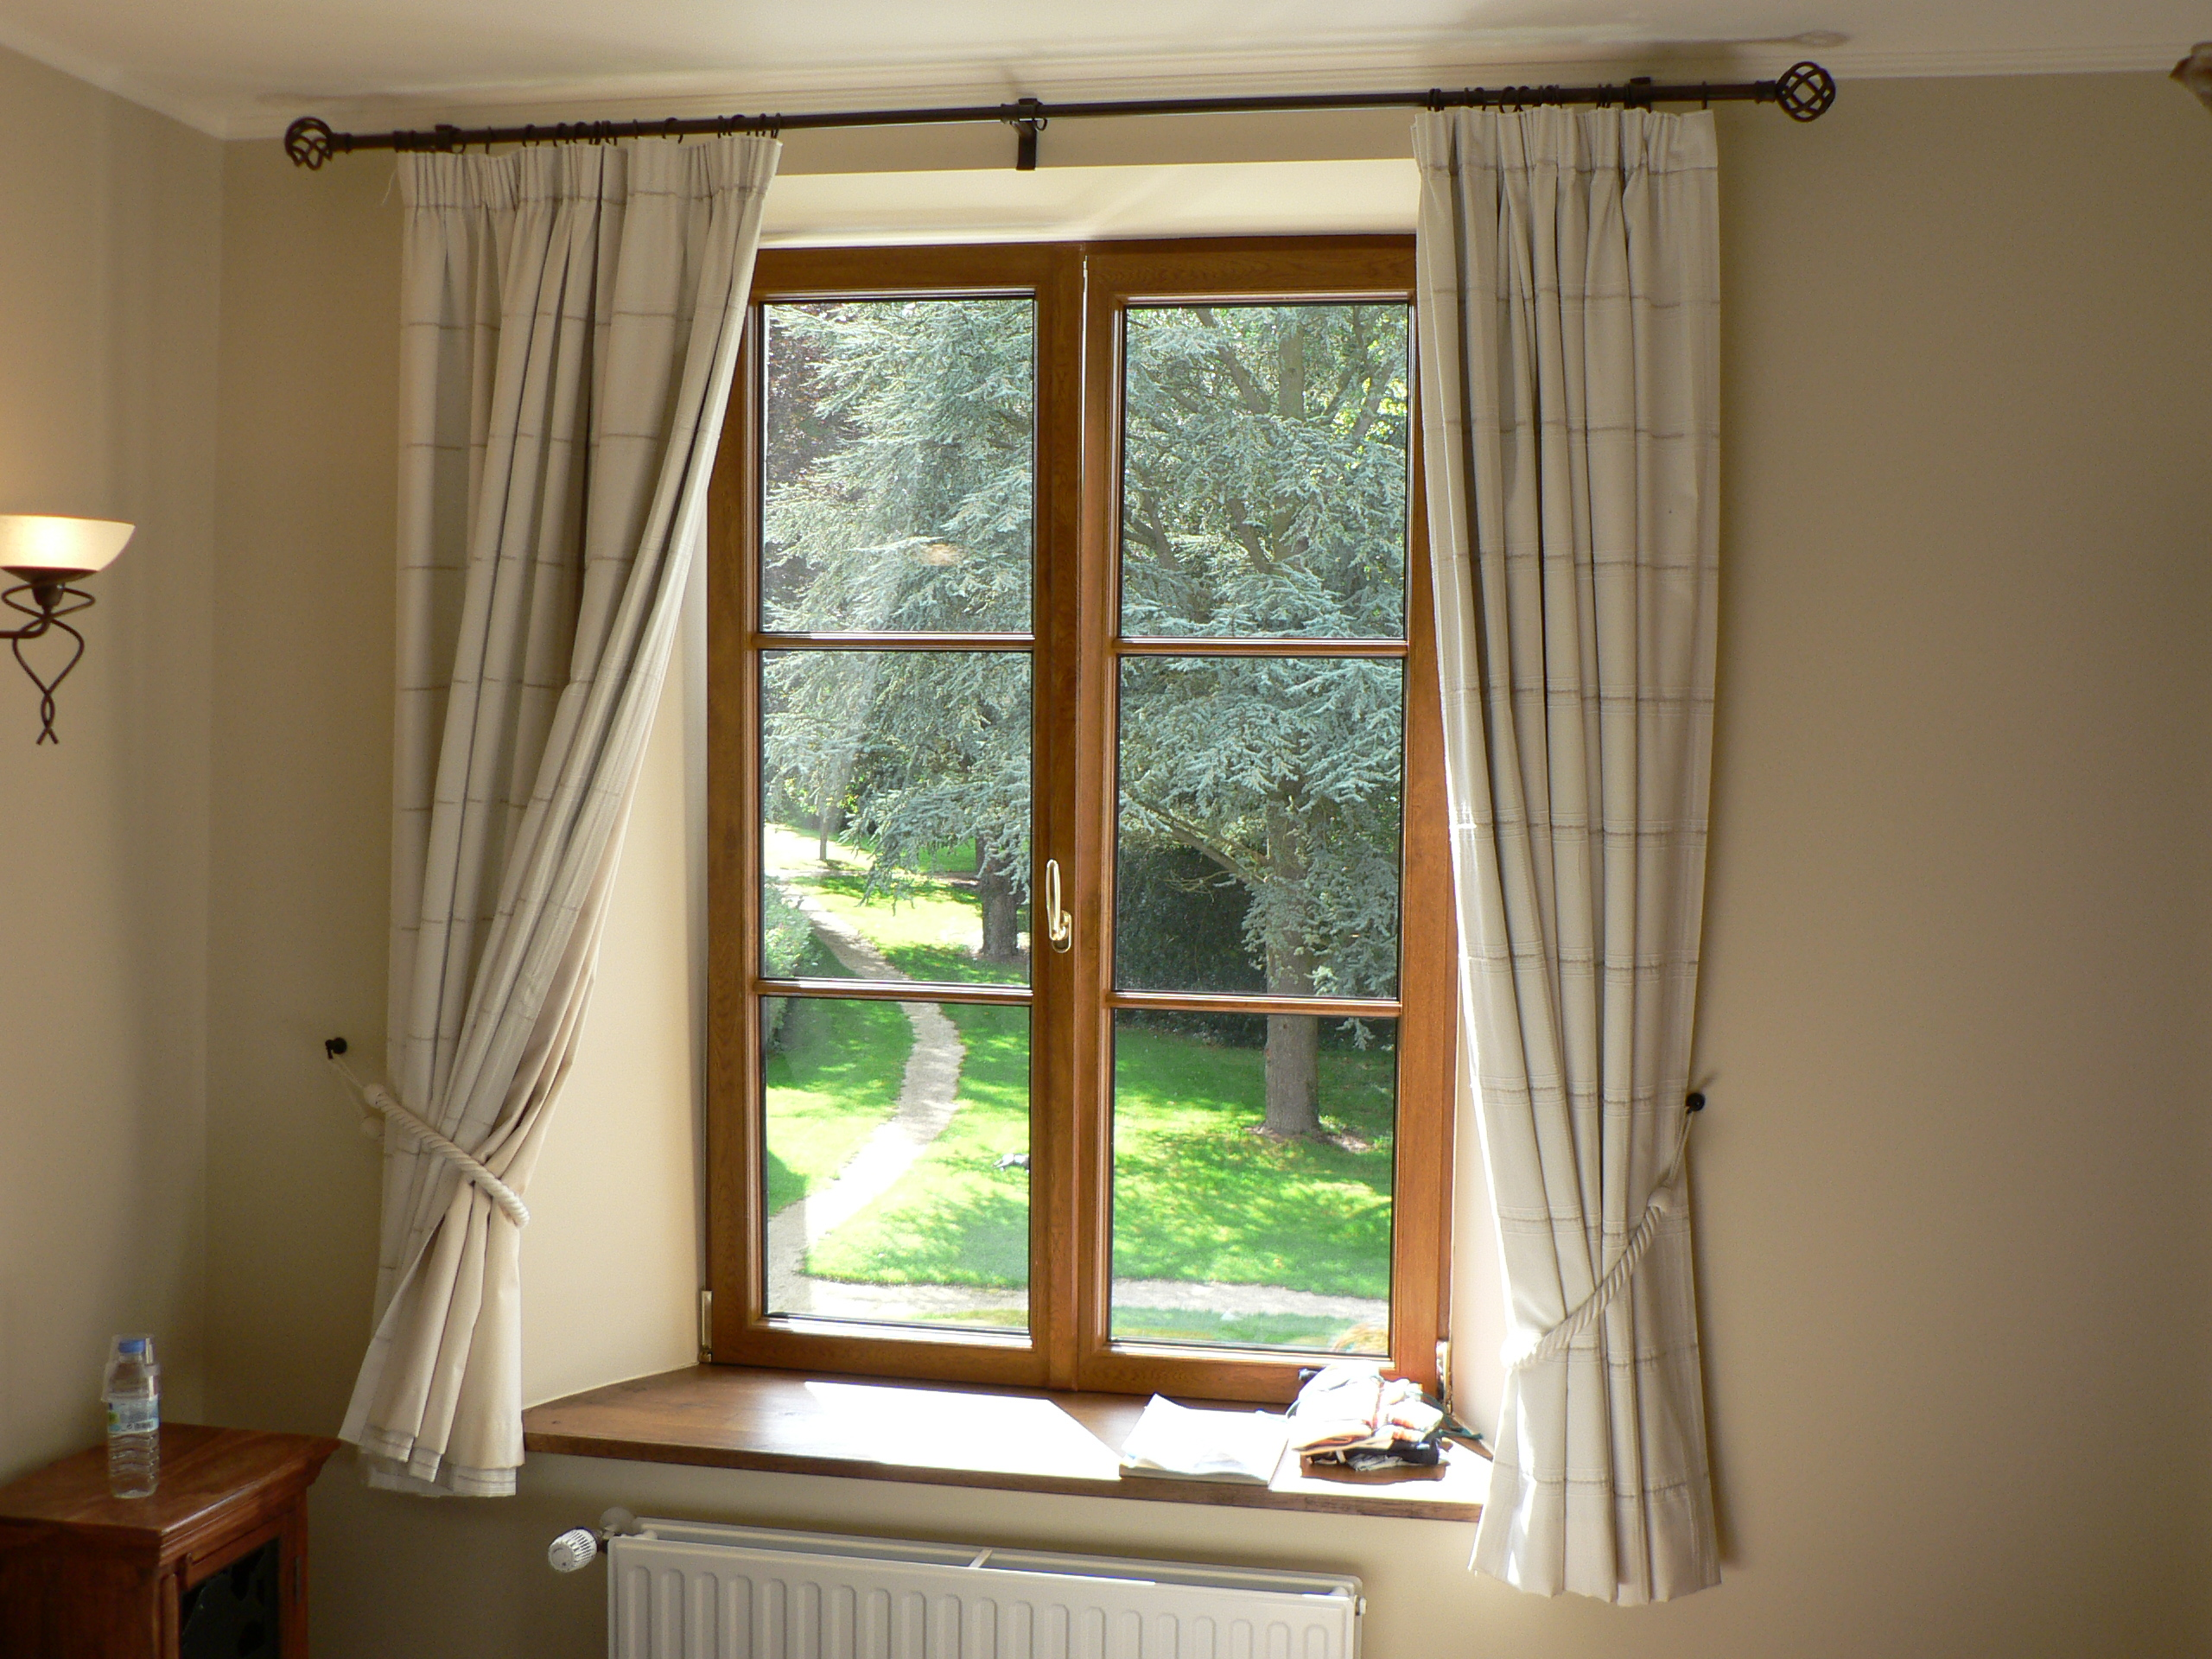 Open up your windows to clean the air in your home naturally.